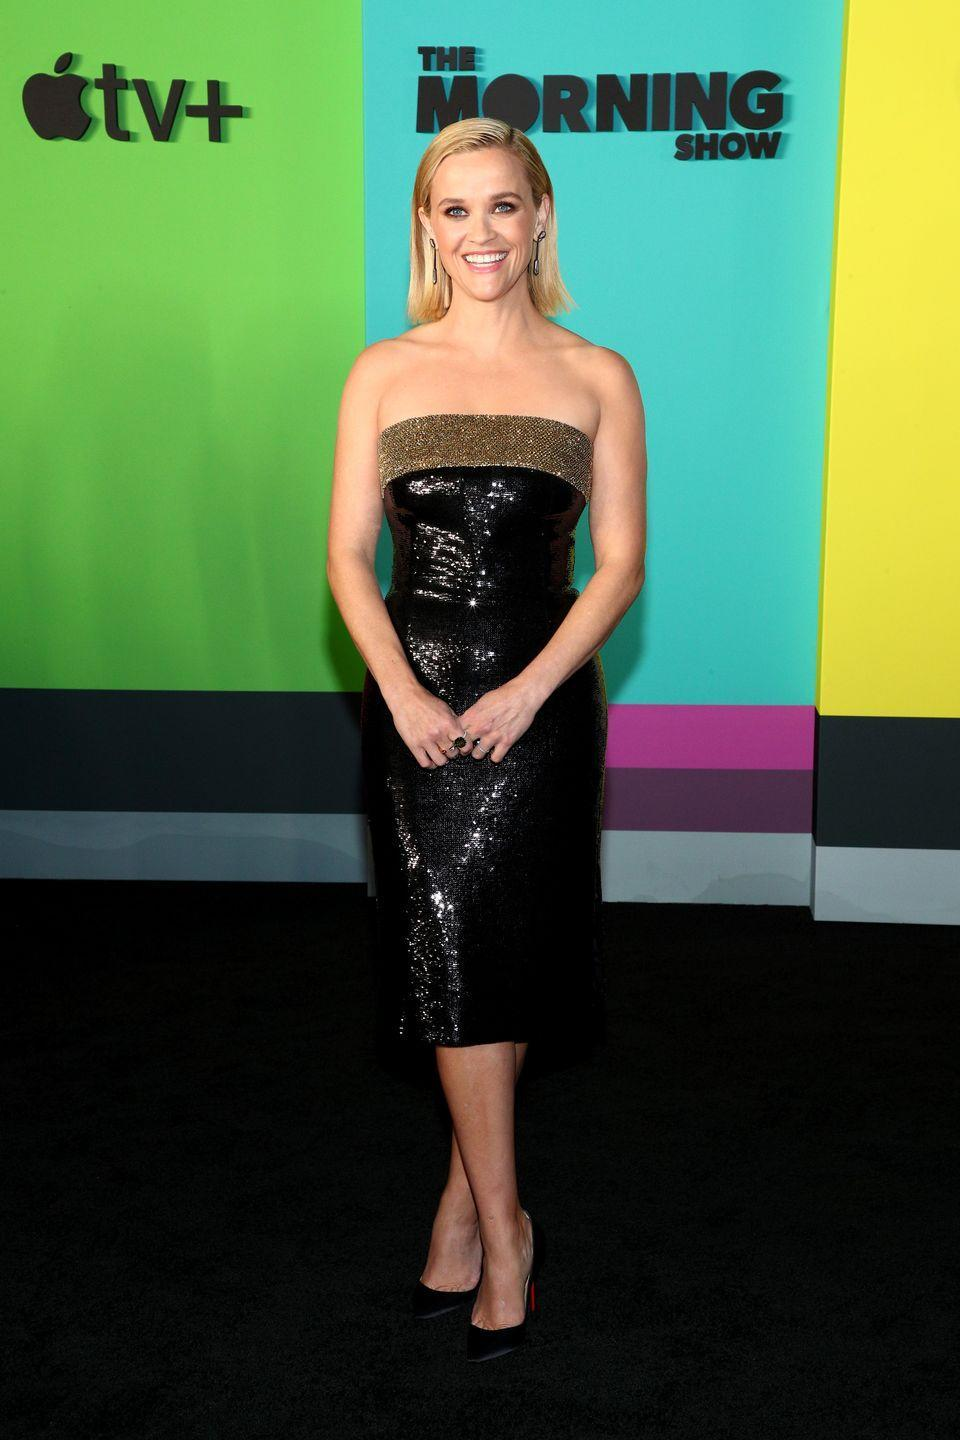 <p>For the world premiere of <em>The Morning Show</em>, she opted for a black and gold sequined Celine dress. </p>